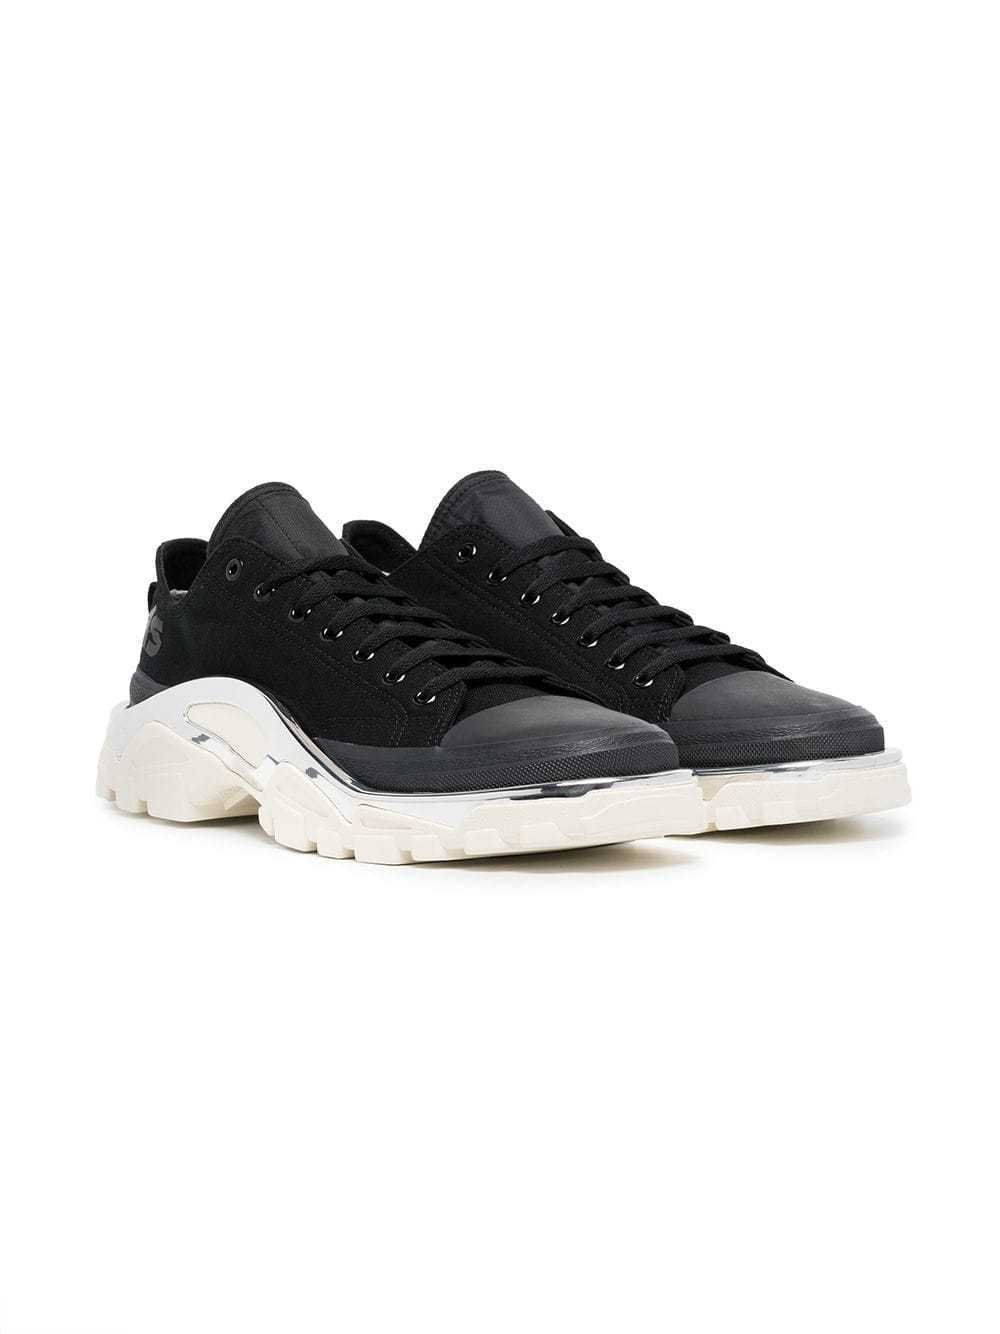 shop raf simons detroit runner